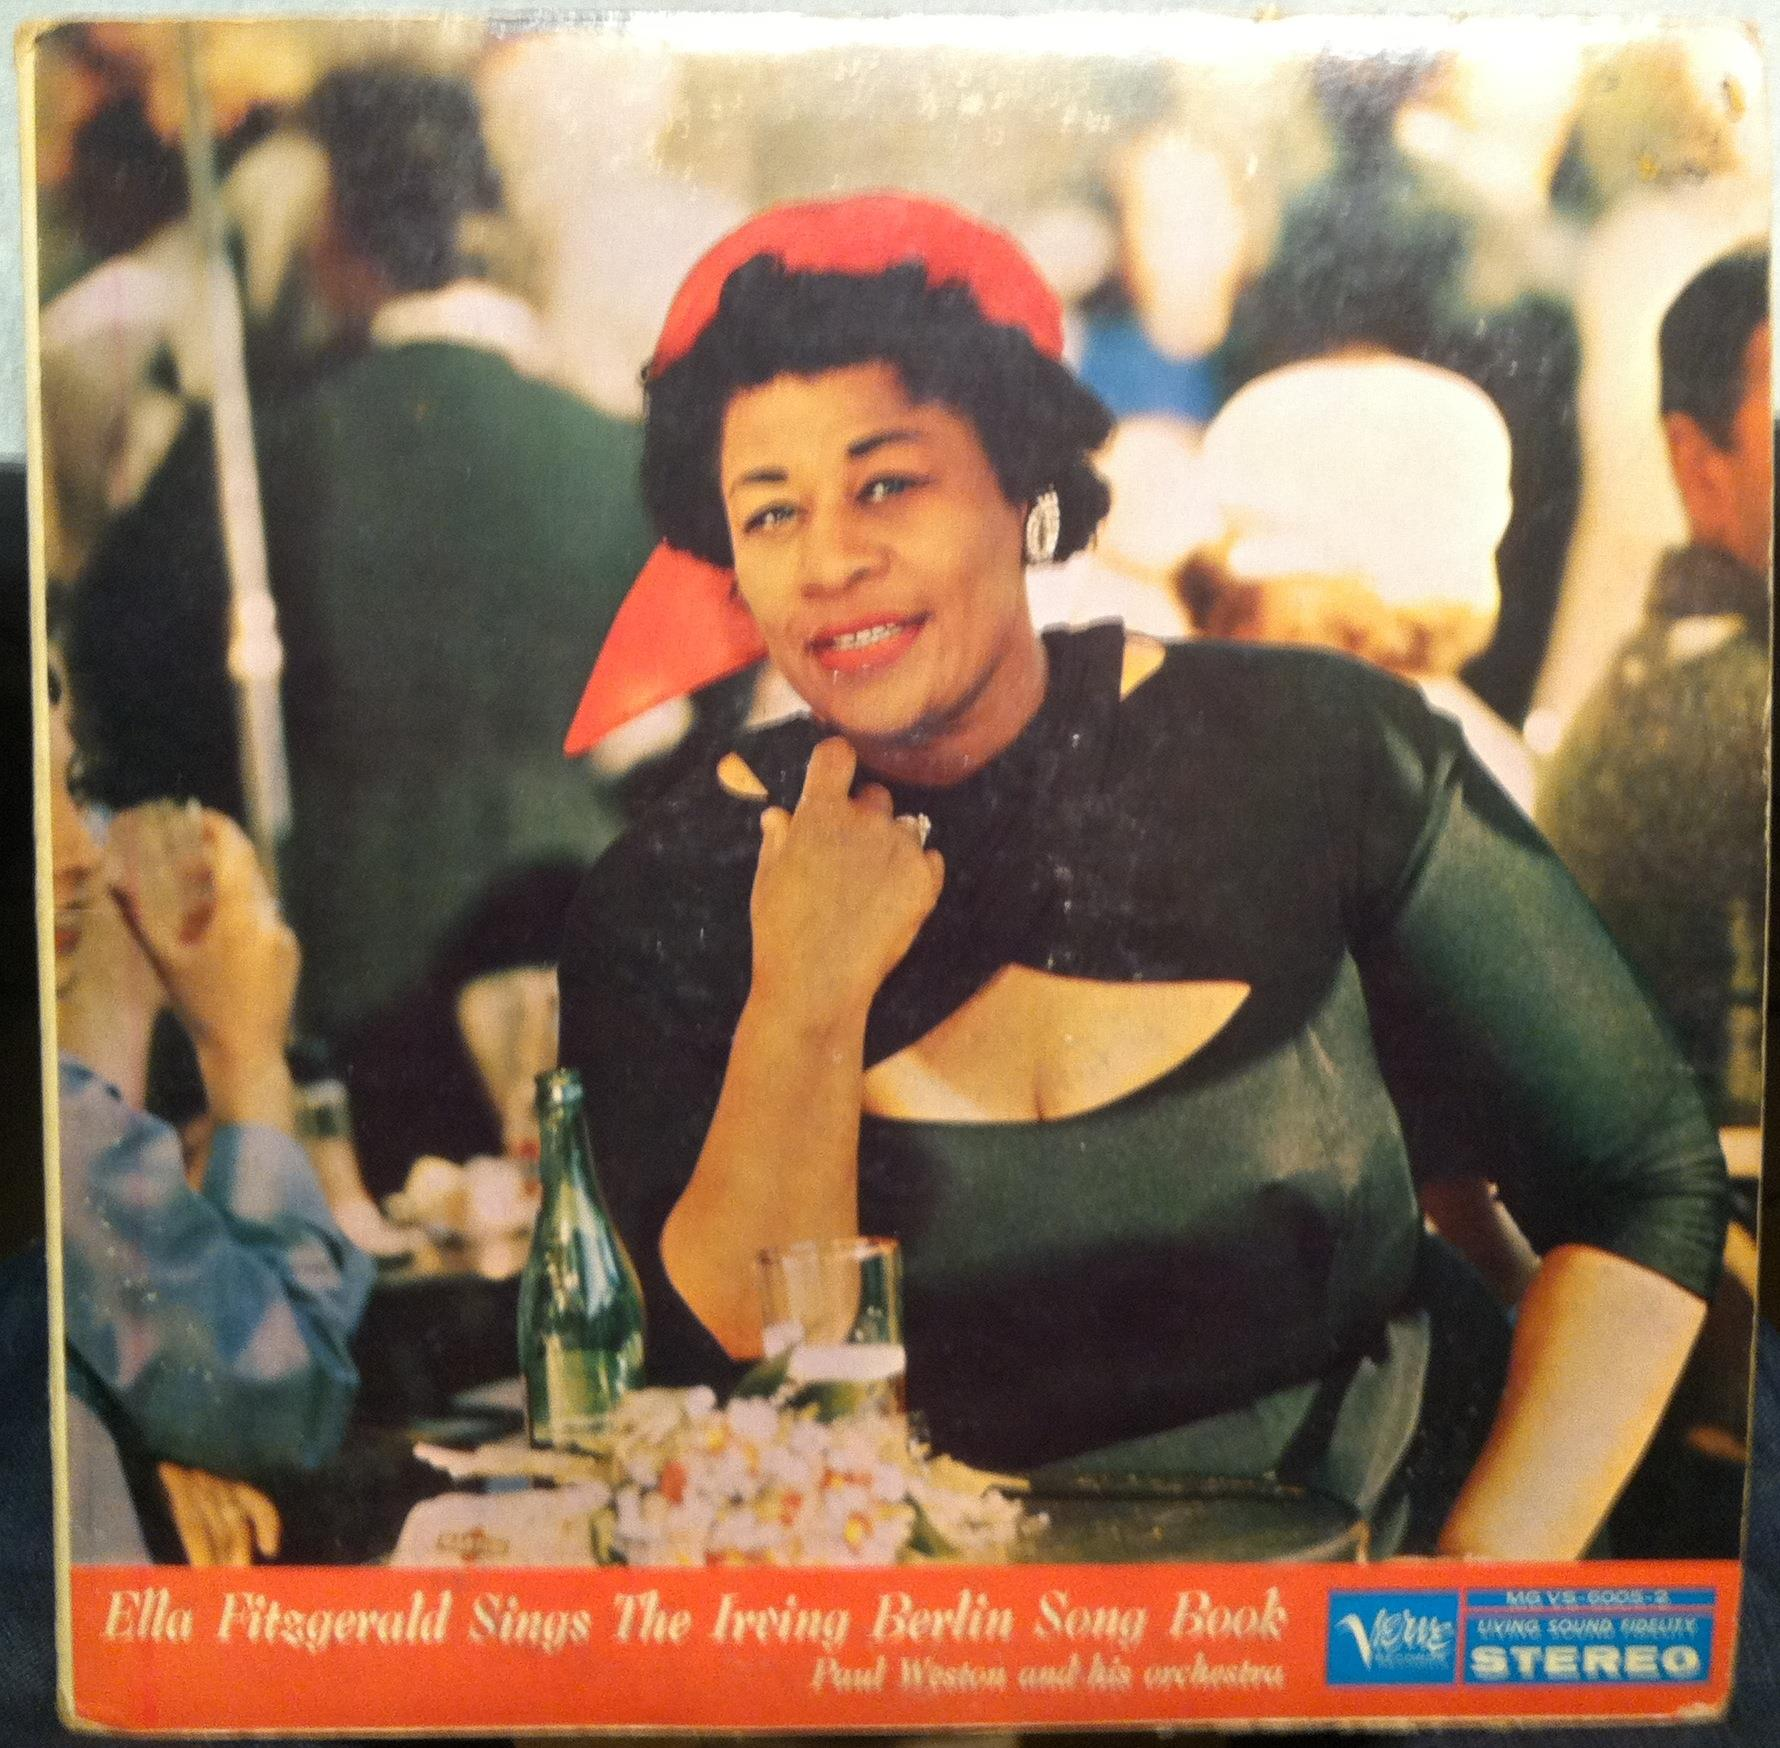 Ella Fitzgerald Sings Irving Berlin Song Book 2 Lp Vg Mg